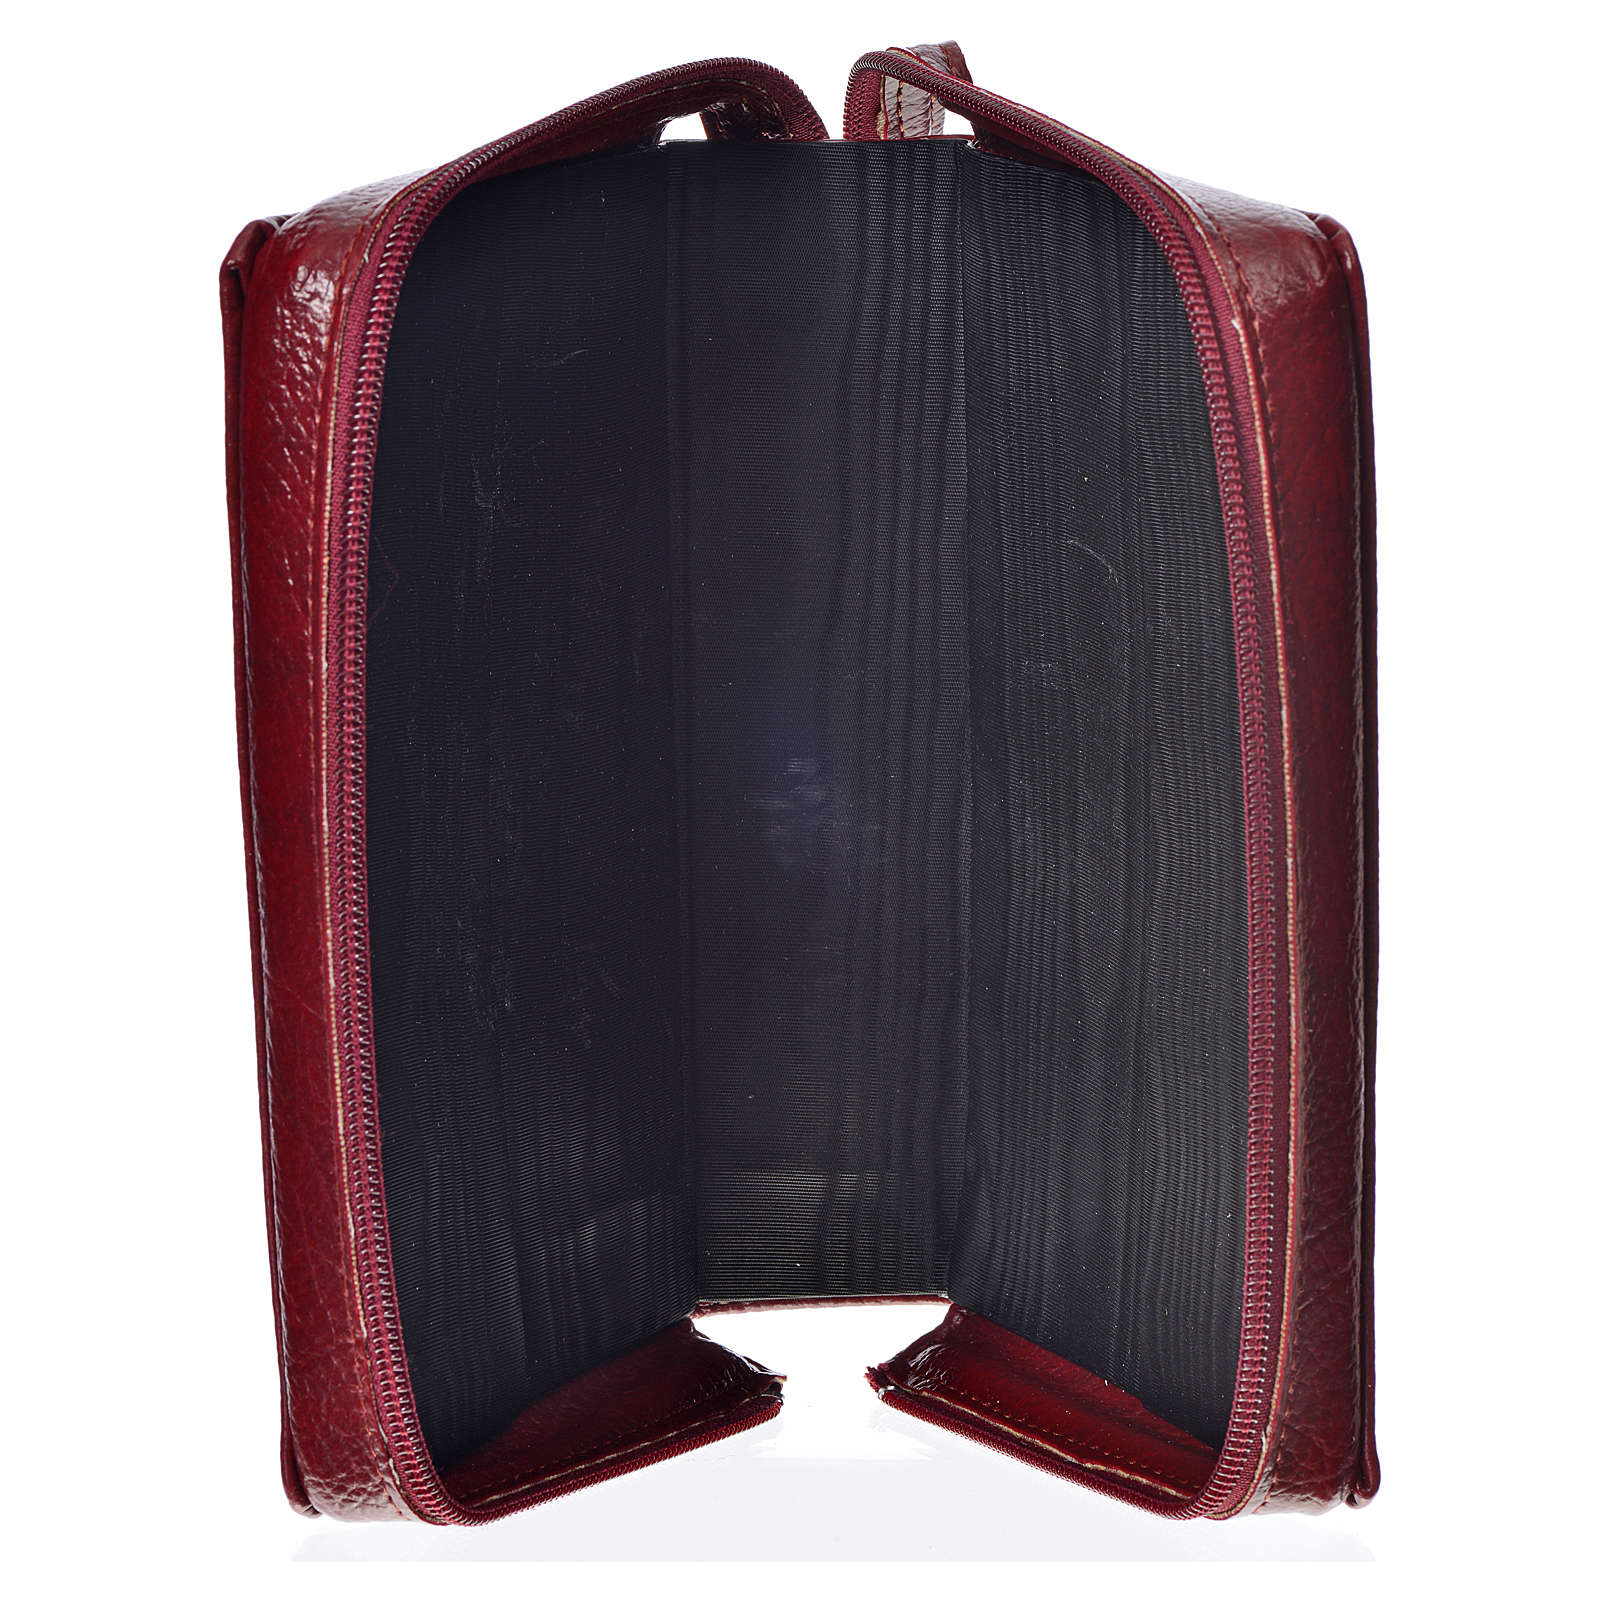 Morning & Evening prayer cover, burgundy bonded leather with image of the Christ Pantocrator 4